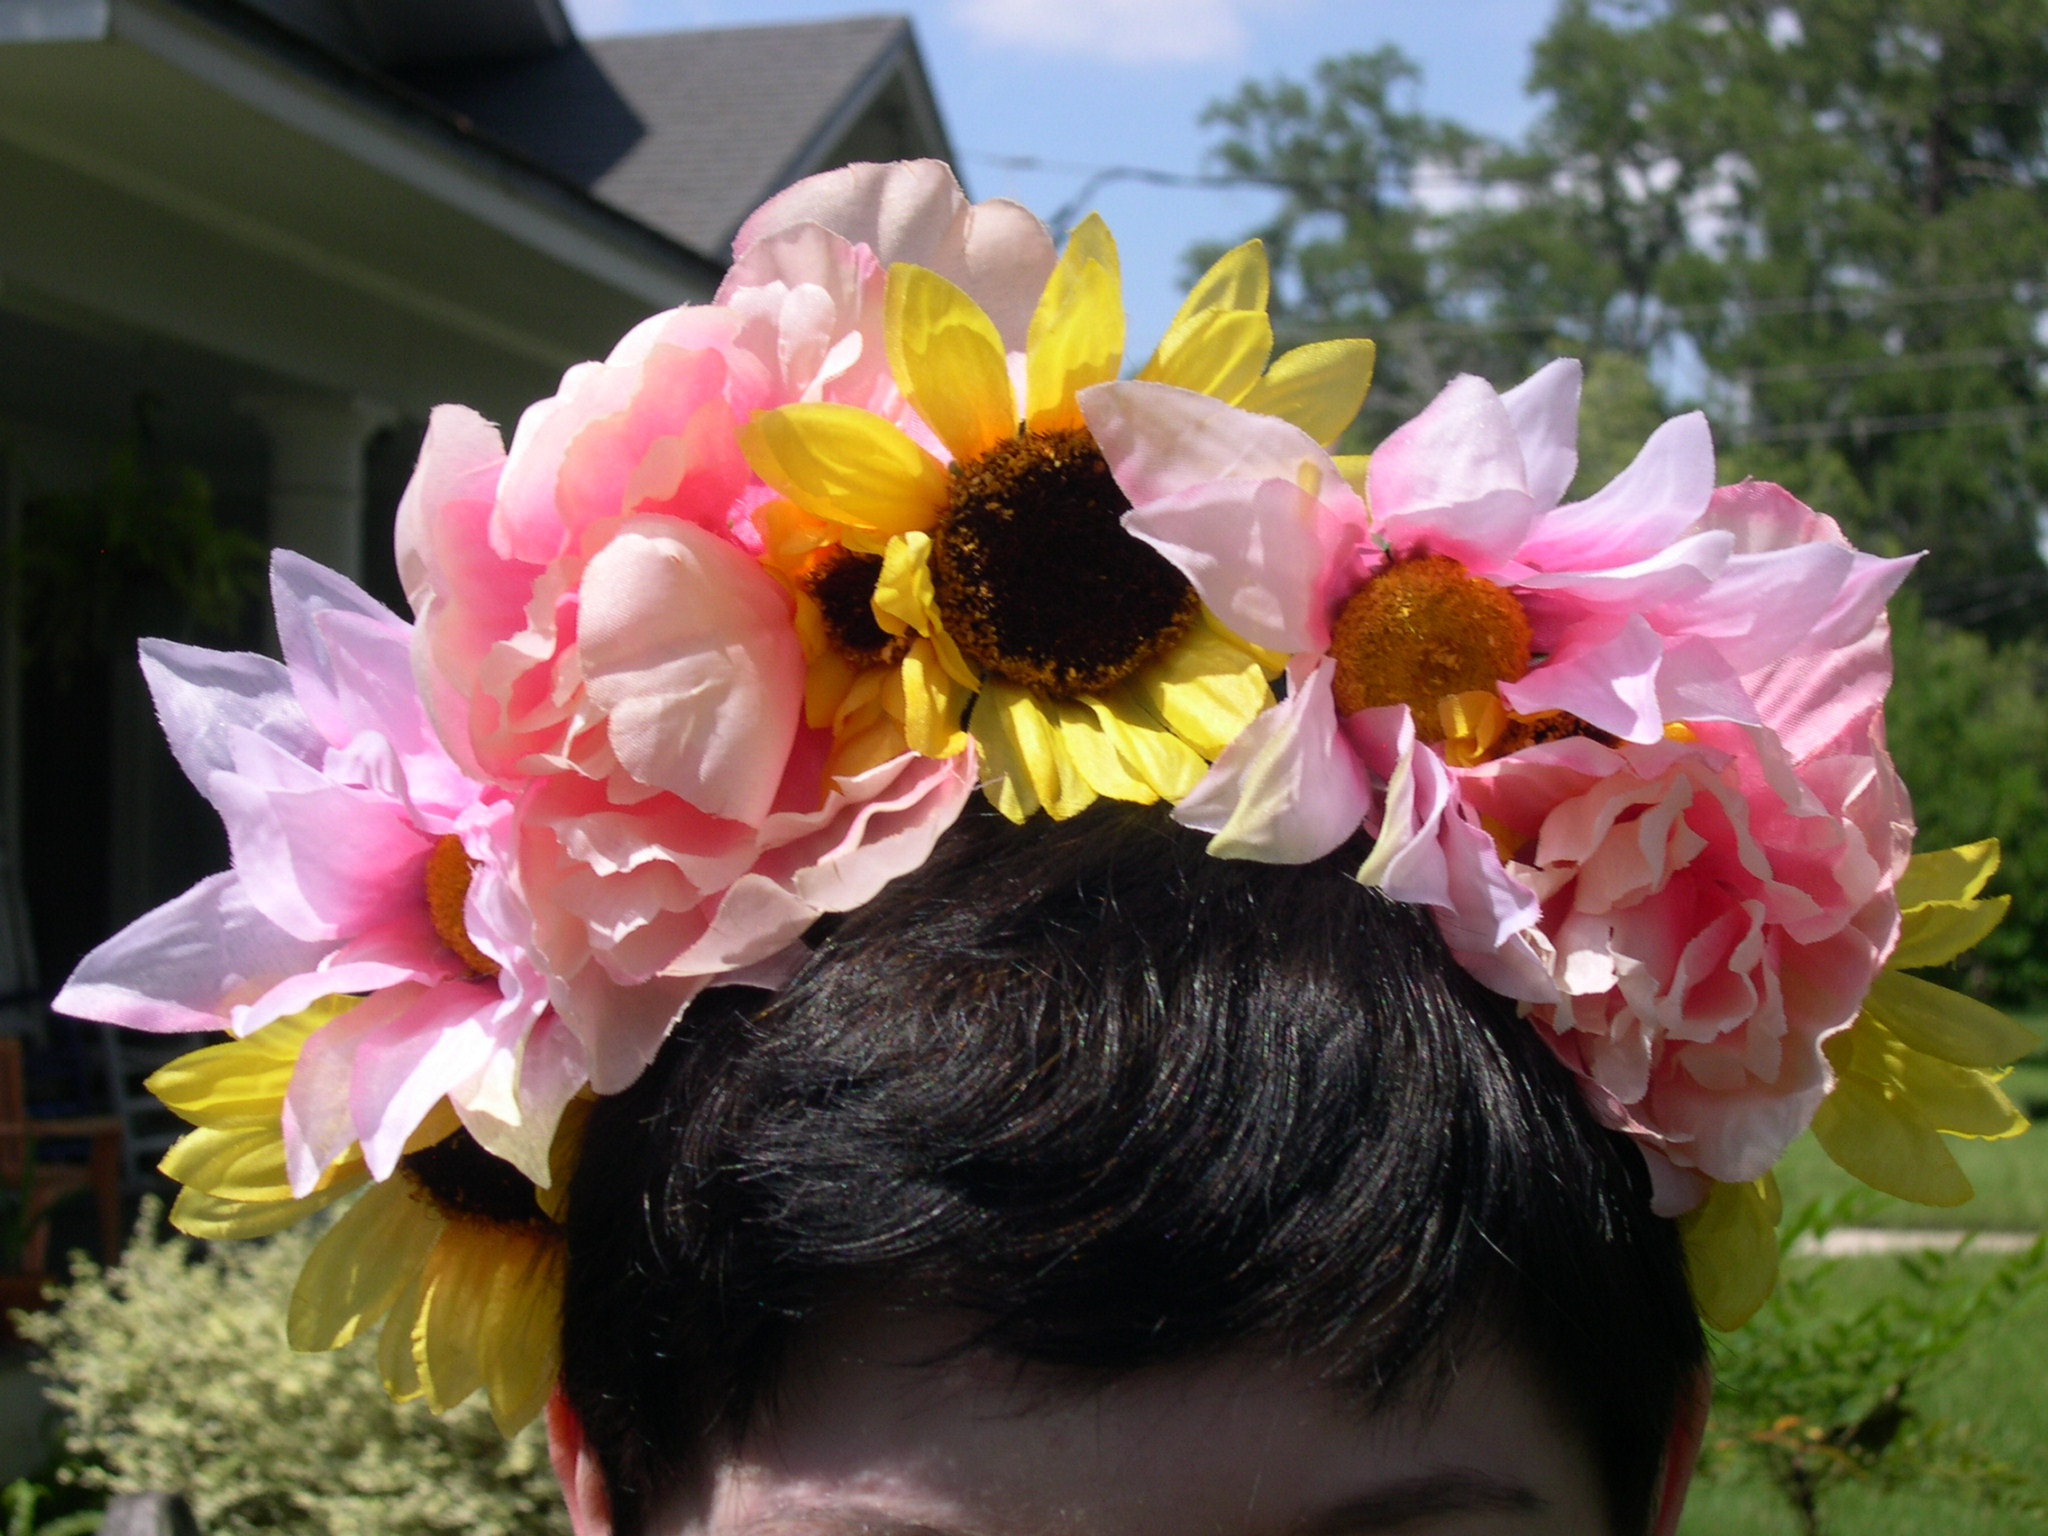 Baby Baphotique Summertime Flower Crown Online Store Powered By